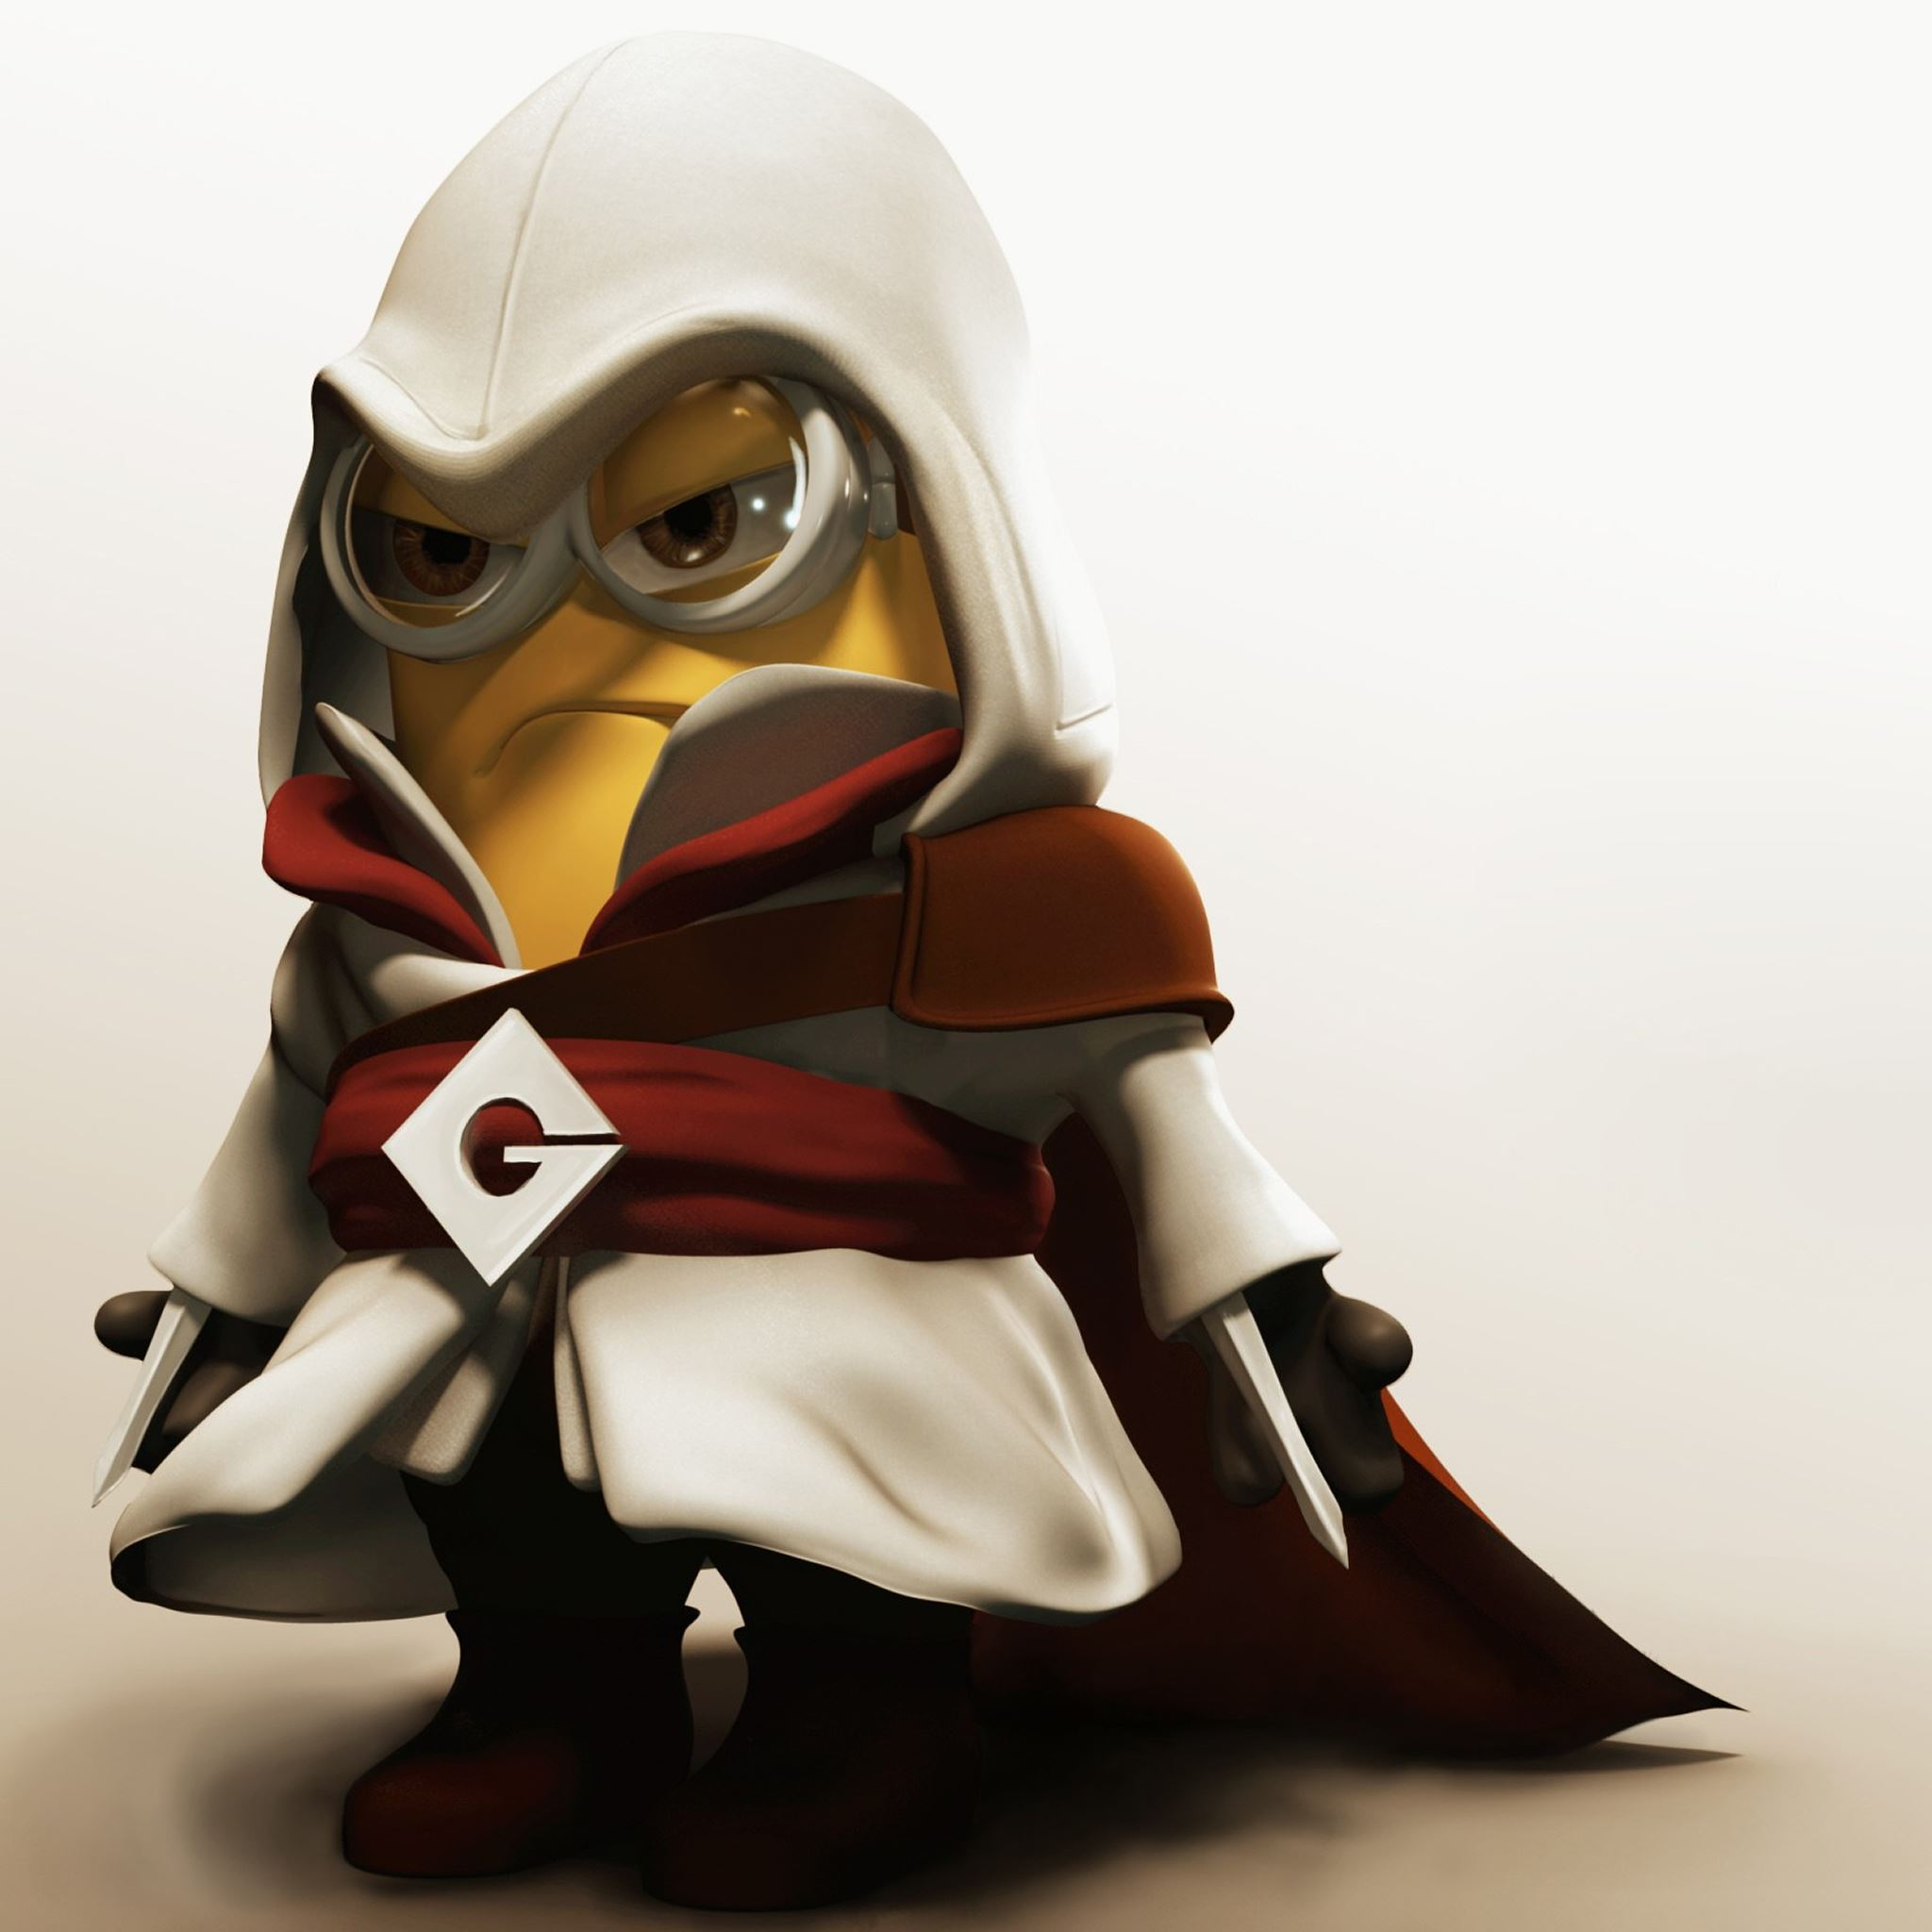 Funny Assassin Creed Minion Ipad Air Wallpapers Free Download